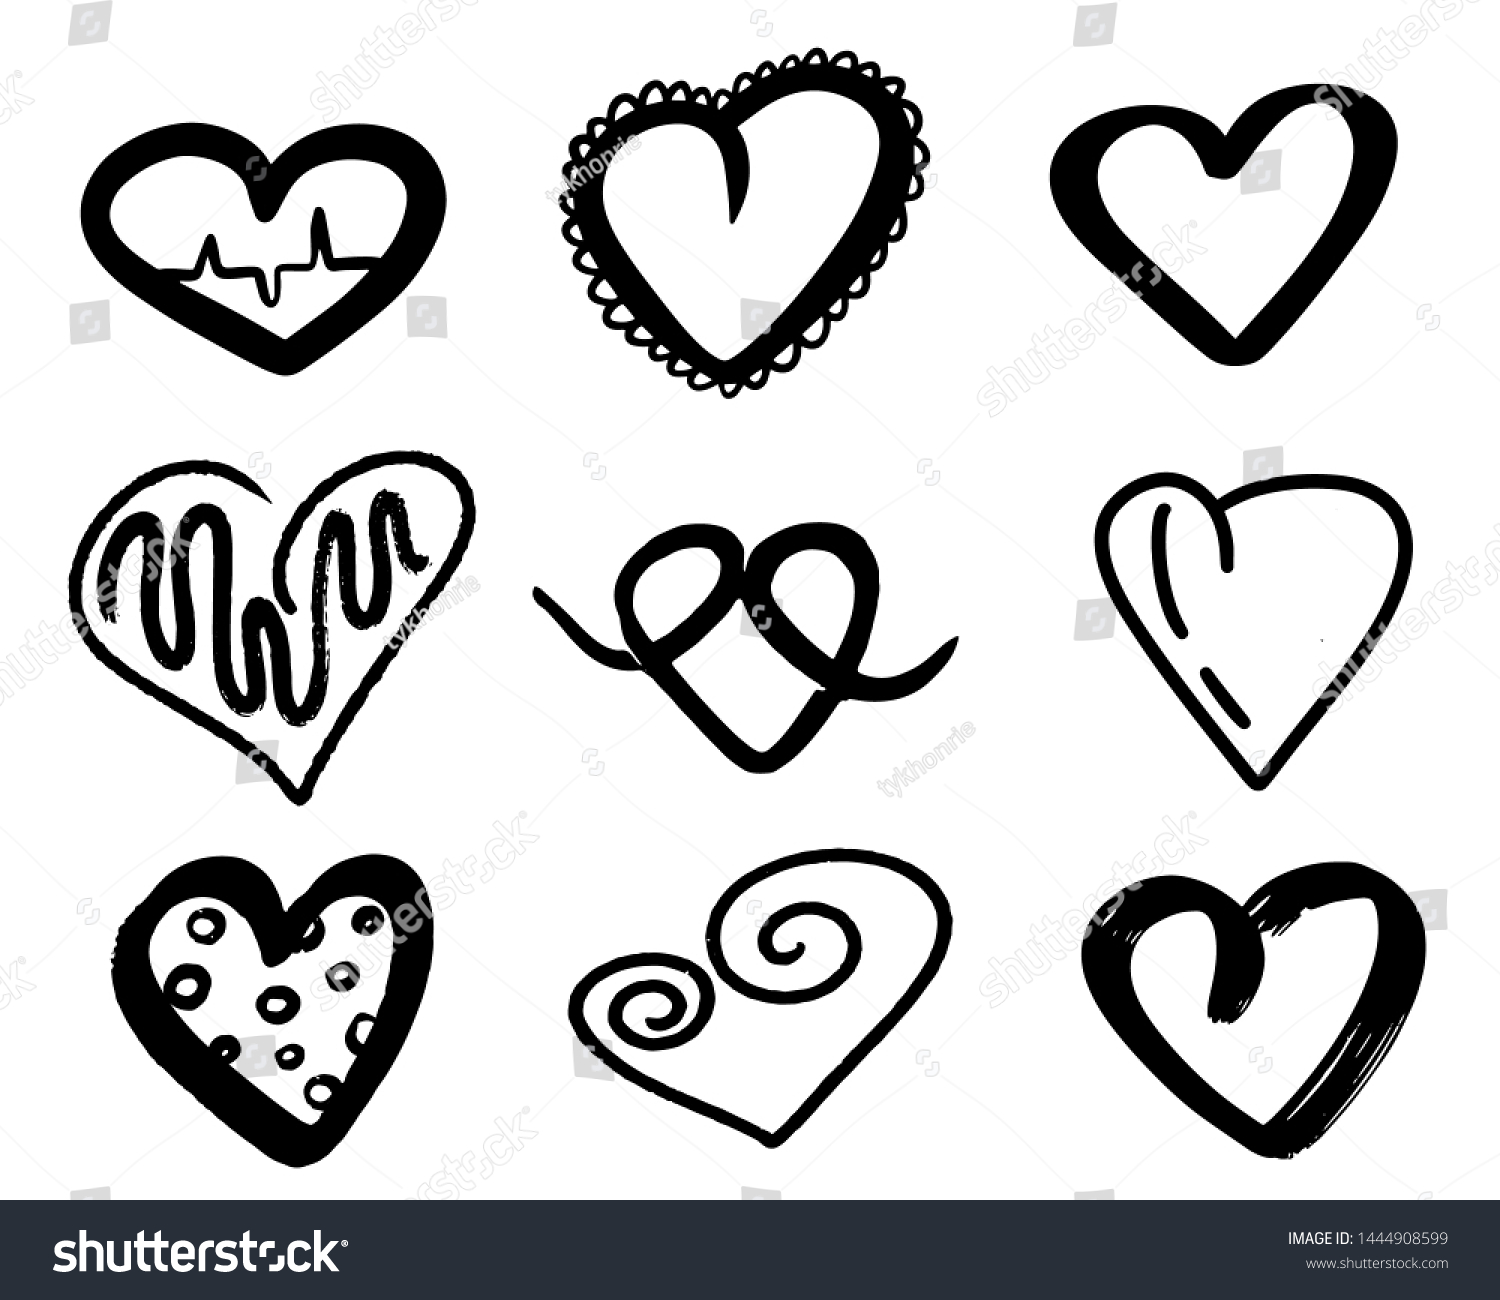 stock-photo-black-hearts-collection-hand